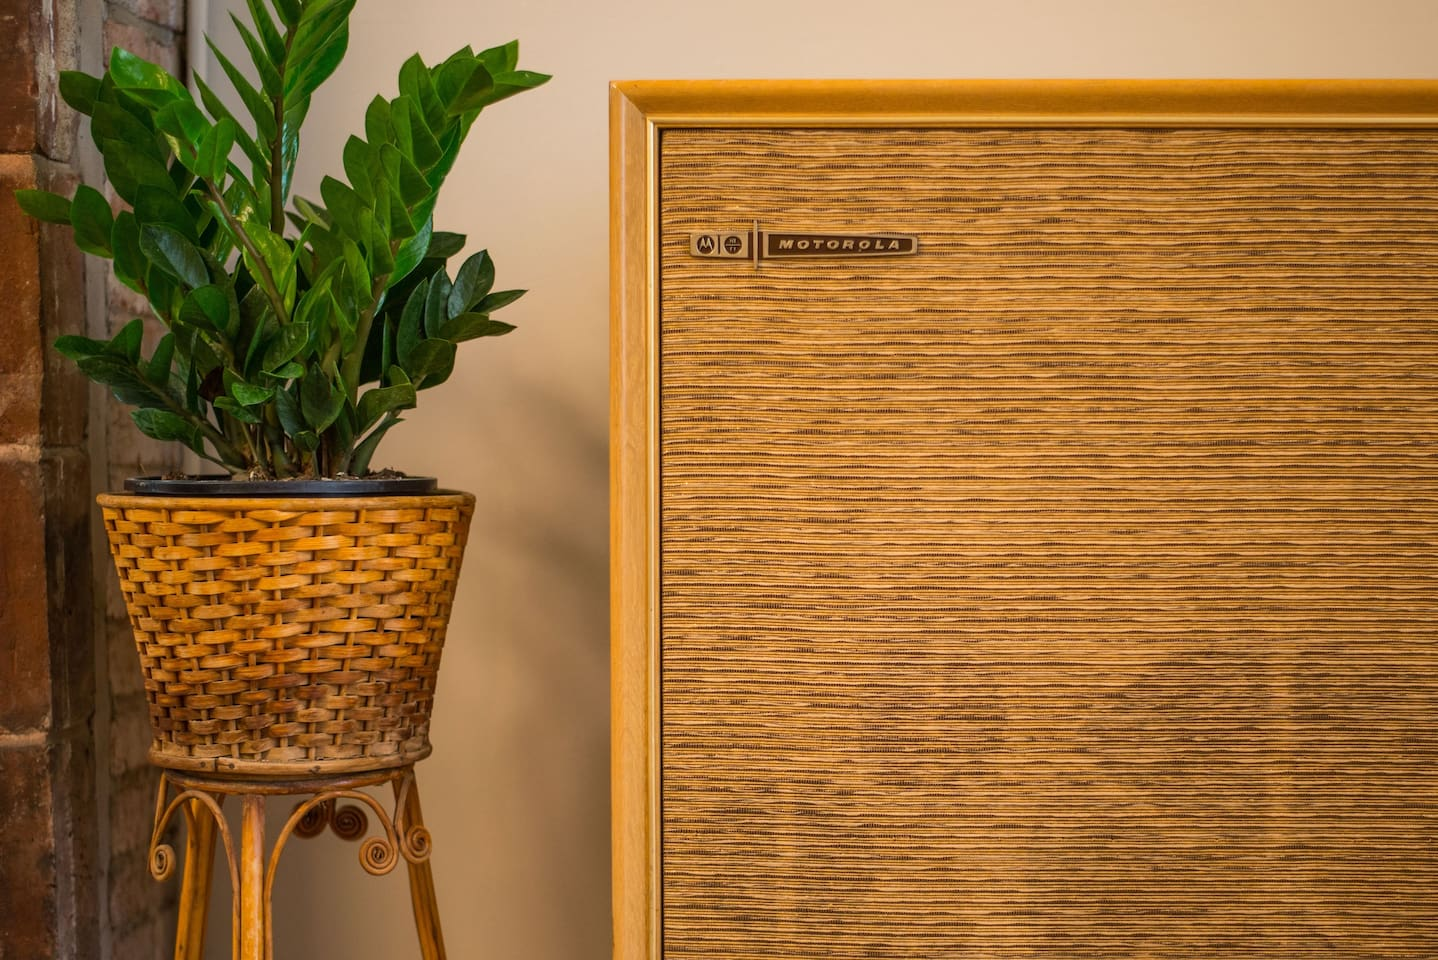 Enjoy our vintage record player (bluetooth adapted, too!) and ever growing record collection.